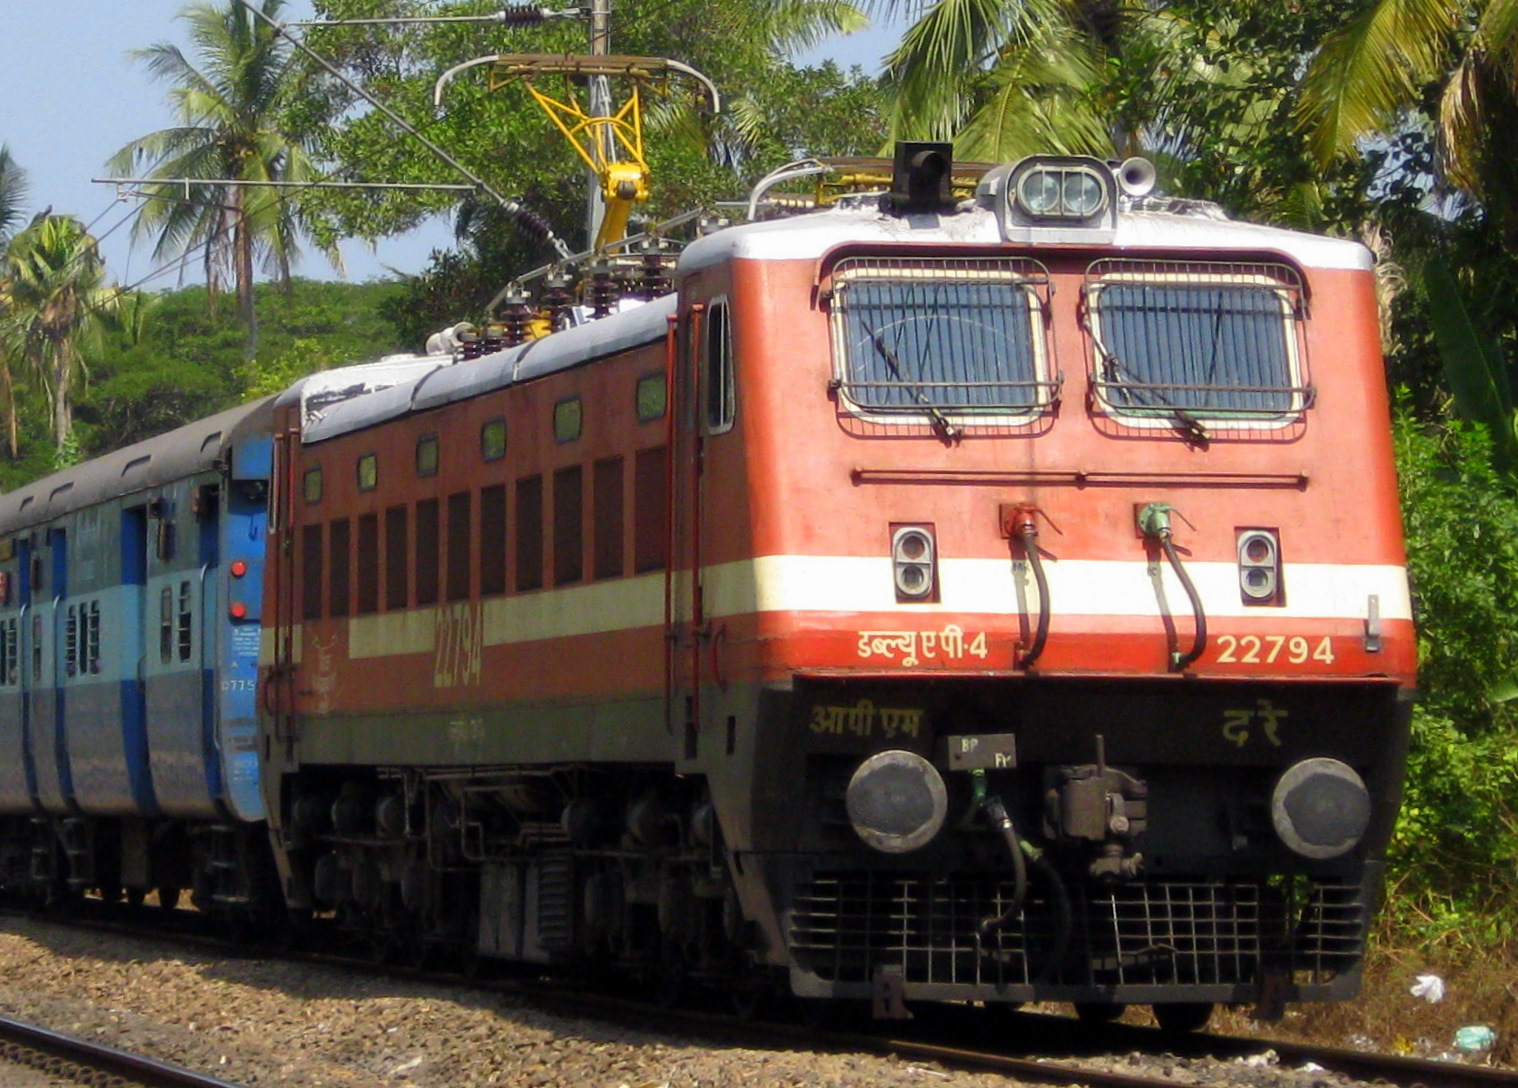 Striking Graphics & Soothing Interiors: NID Makeover Planned for Shatabdi!